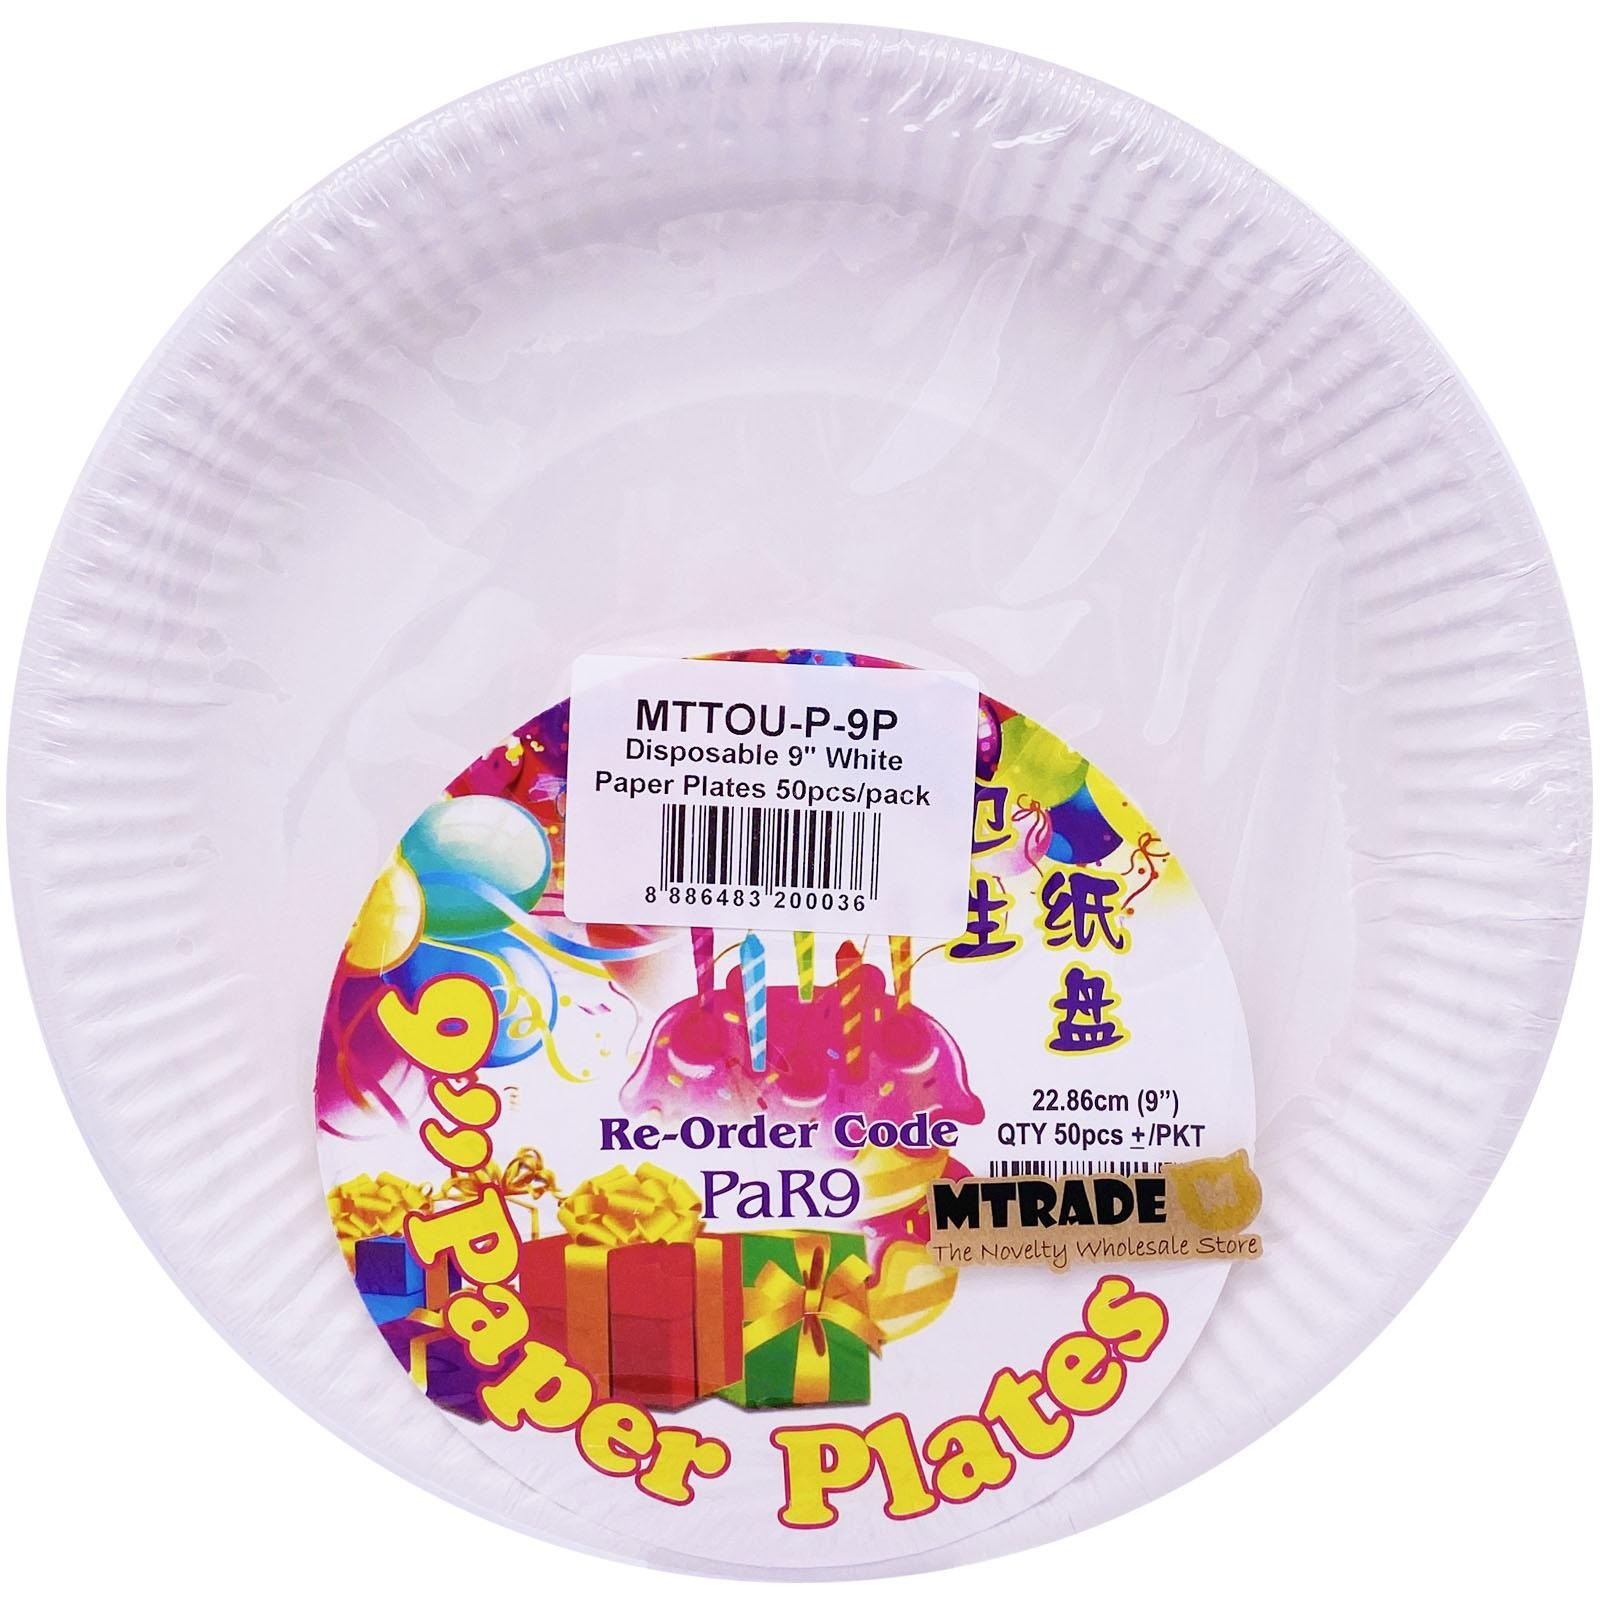 MTRADE Disposable 9 Inch White Paper Plates